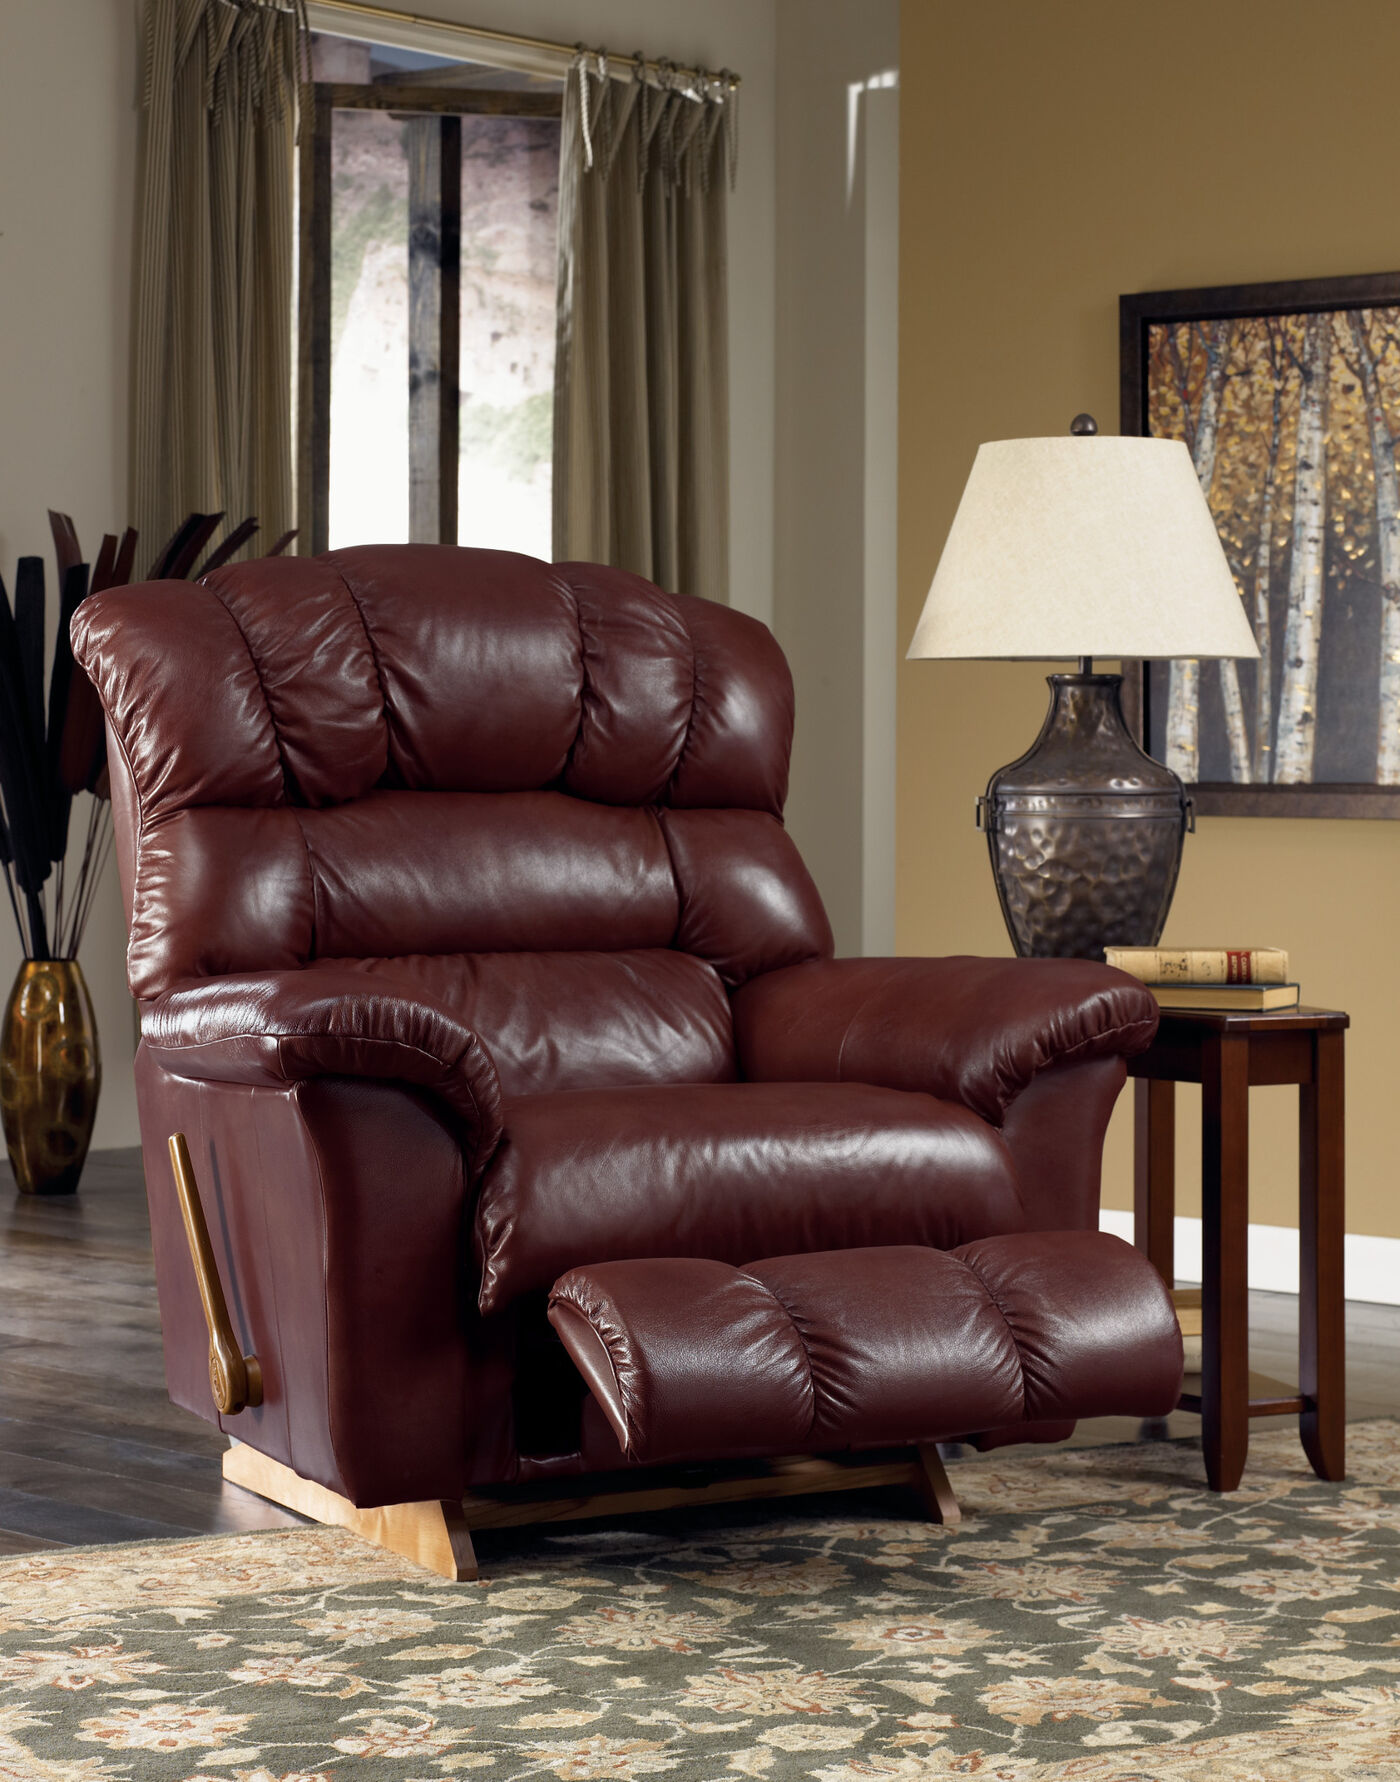 Dark Brown Leather Recliner Chair la-z-boy crandell bordeaux leather recliner | mathis brothers